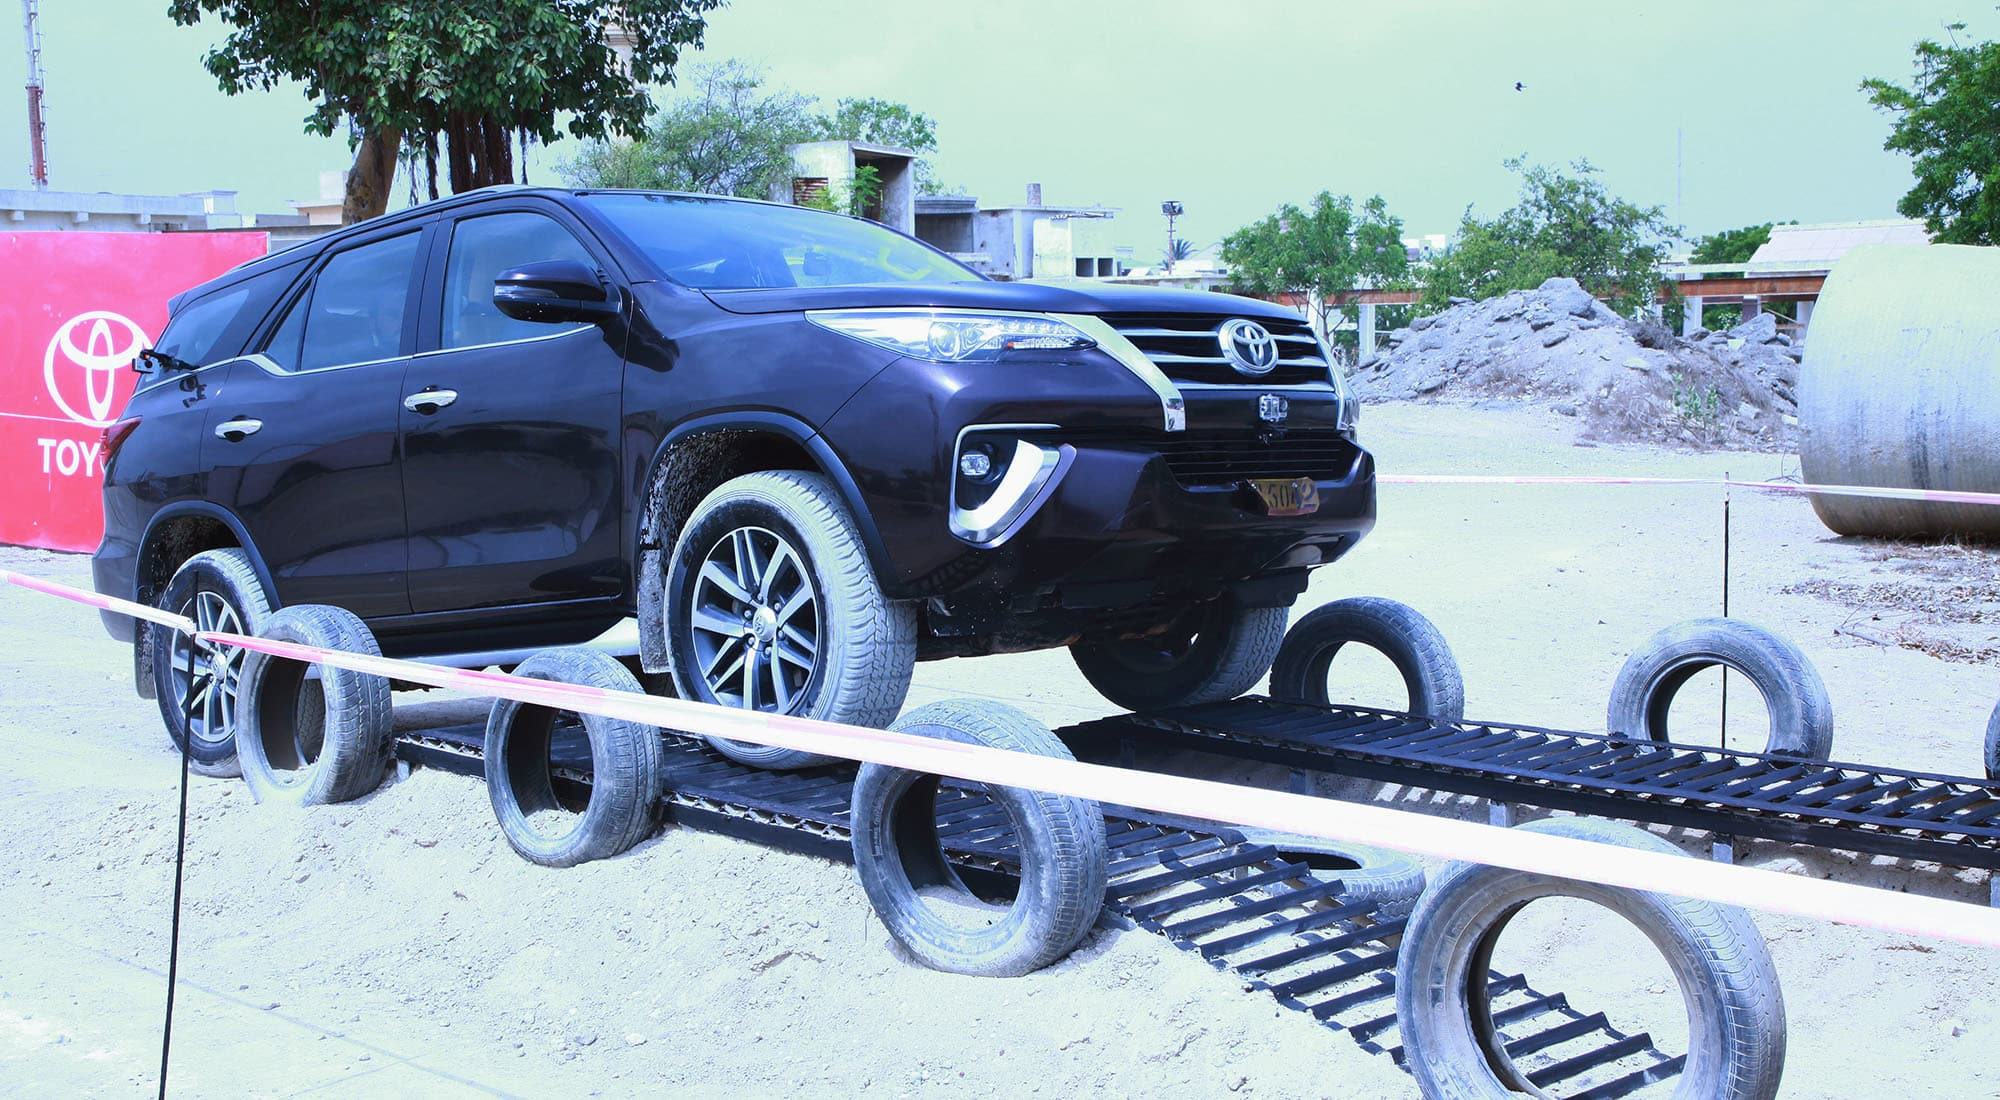 Meet the new Toyota Fortuner Sigma-4 on a thrilling obstacle